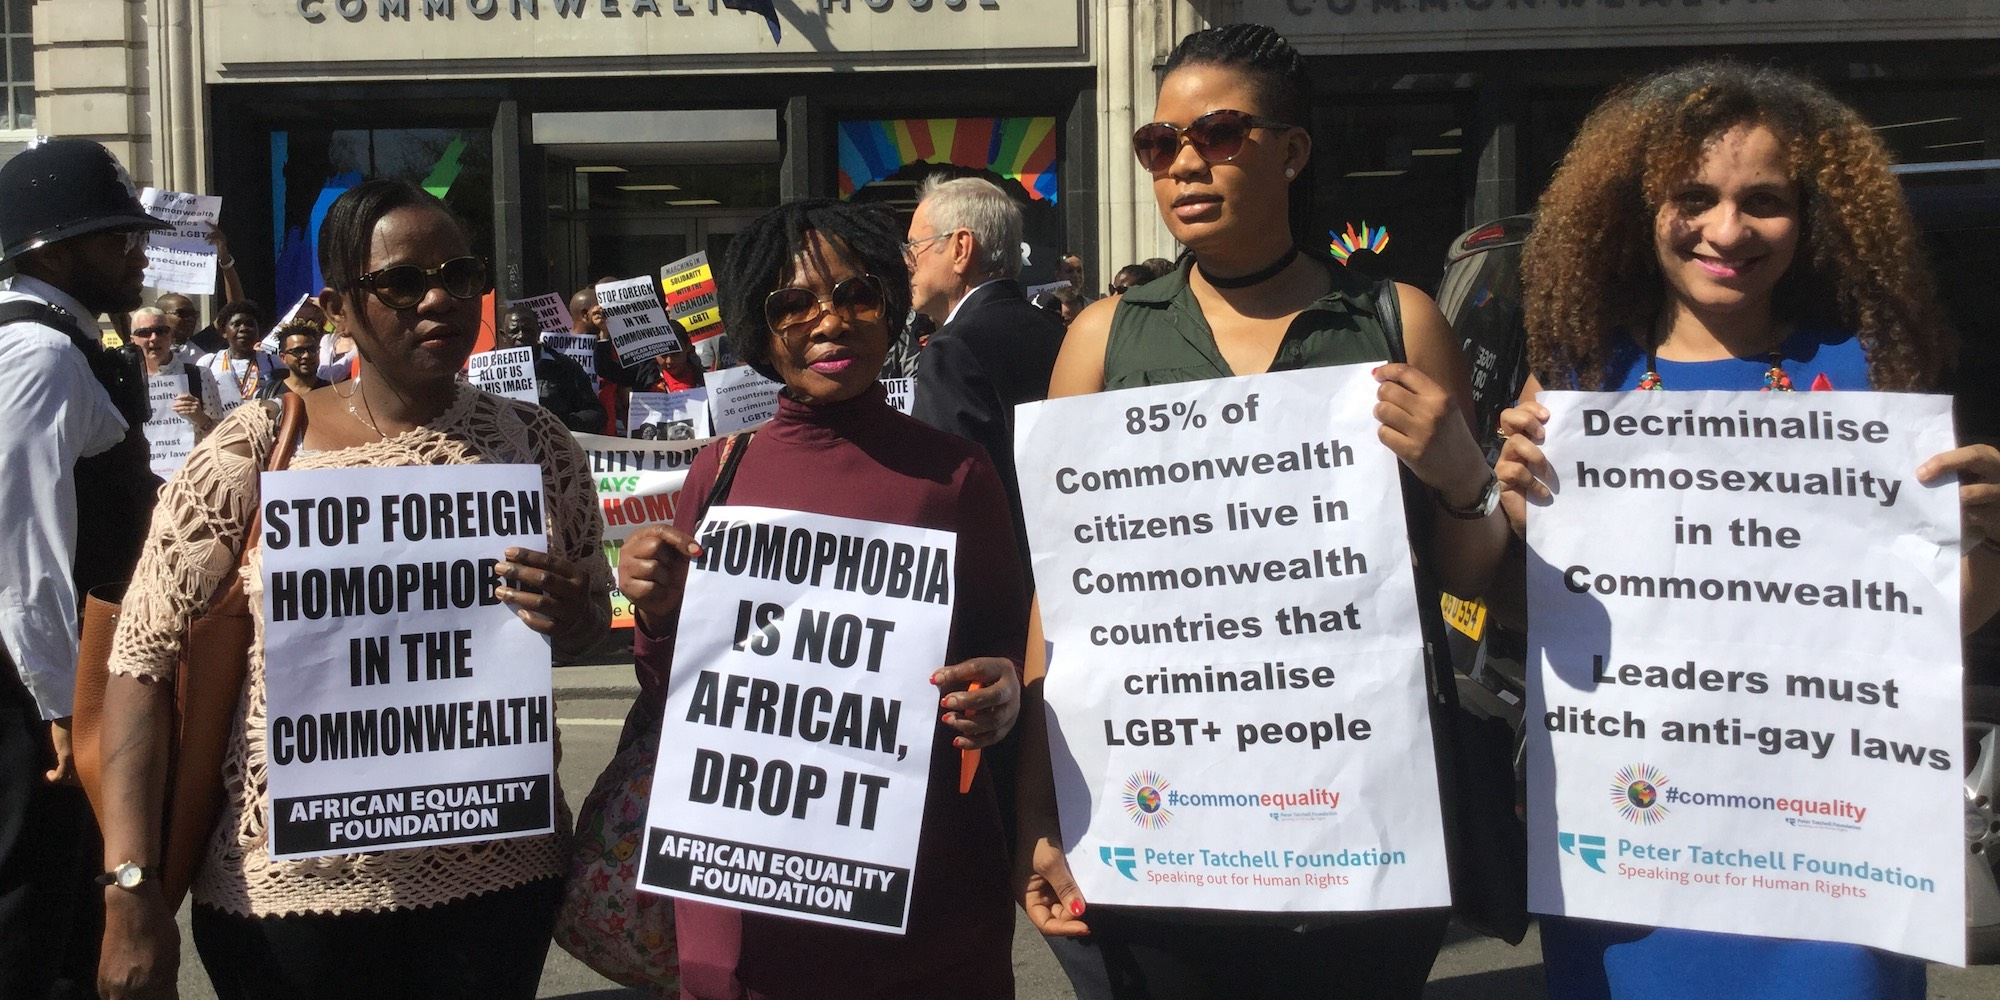 Commonwealth countries criminalise homosexuality